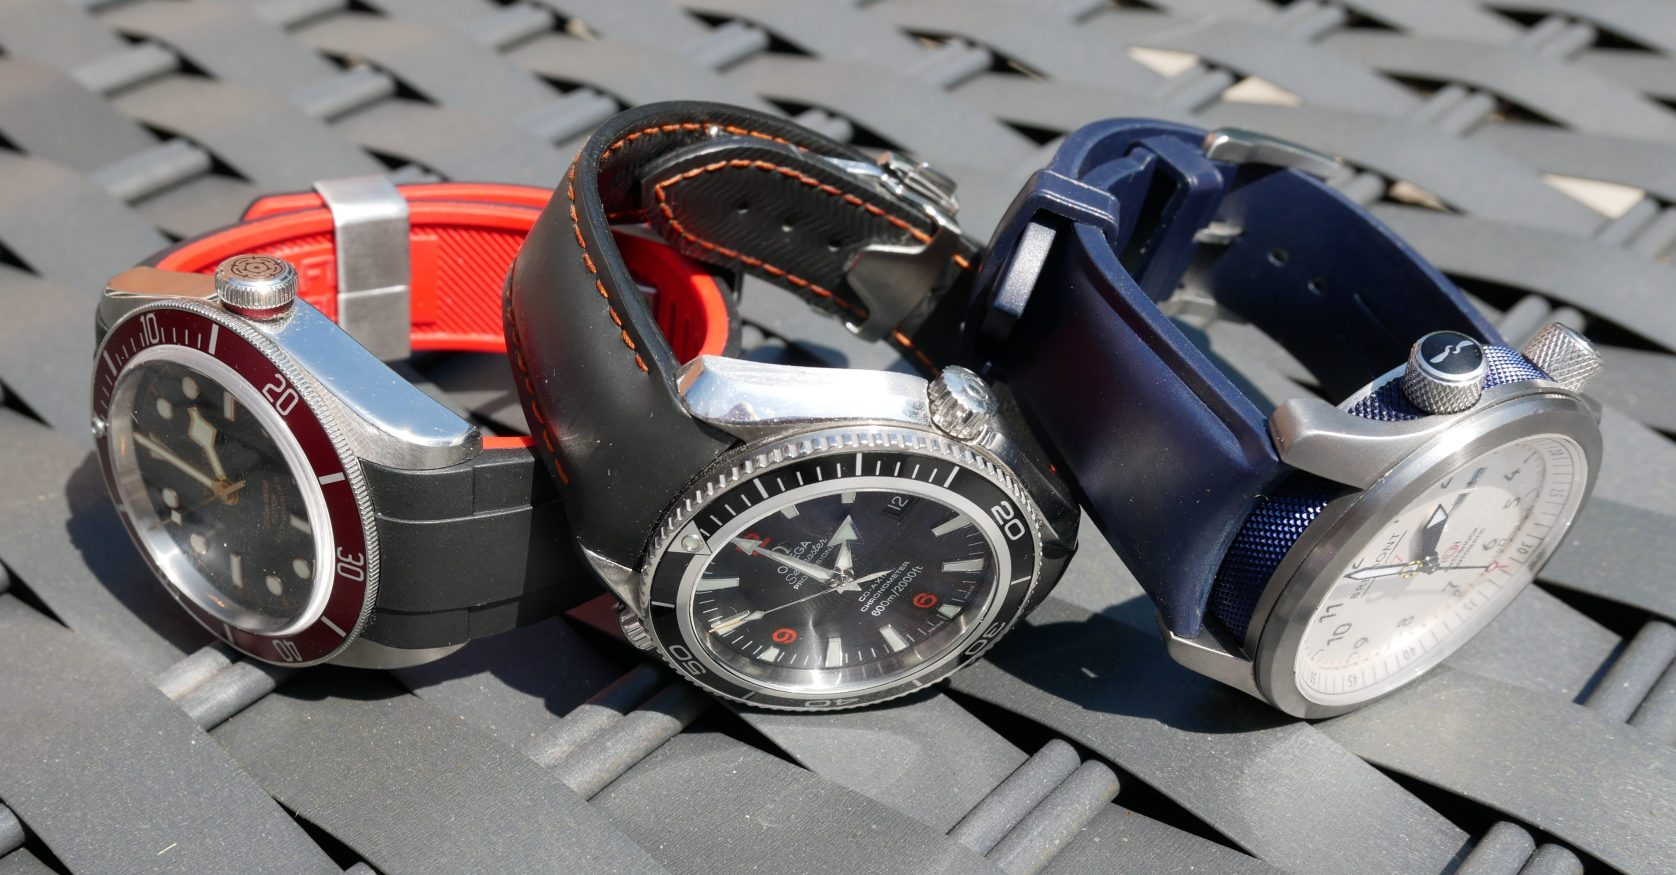 CrafterBlue, Omega & Bremont OEM